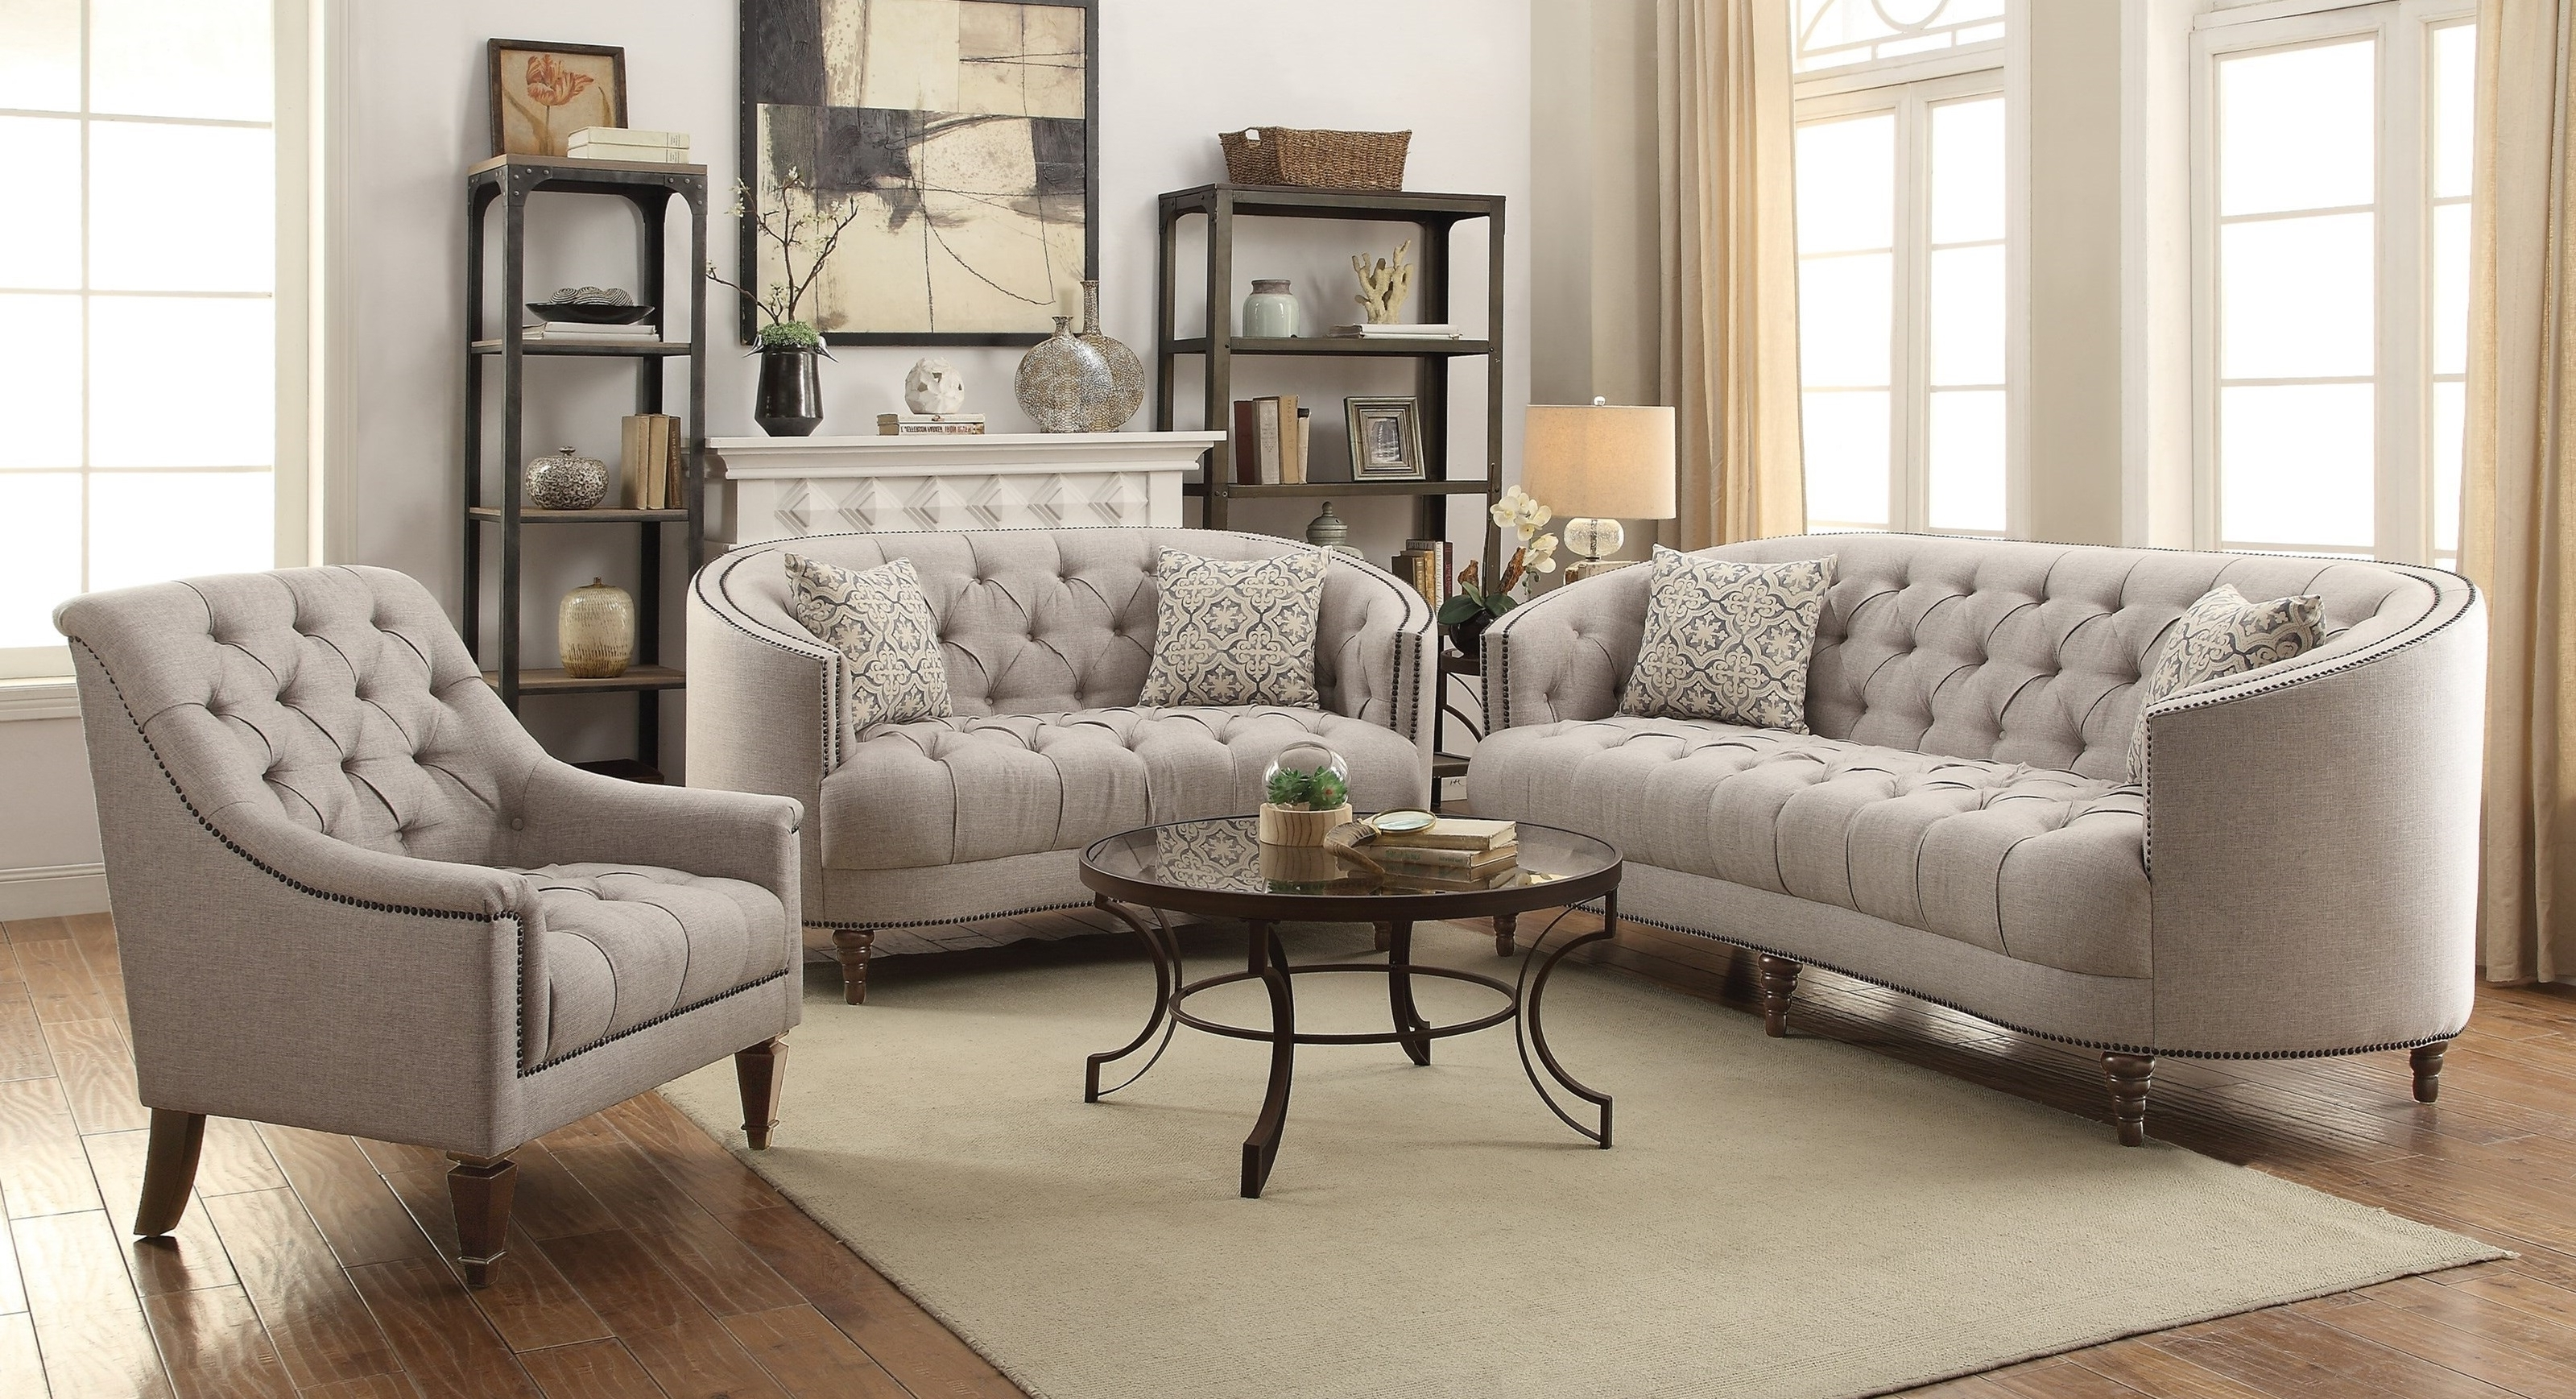 Widely Used Avonlea Sofa And Chair Set – 505641 Pertaining To C Shaped Sofas (View 5 of 20)